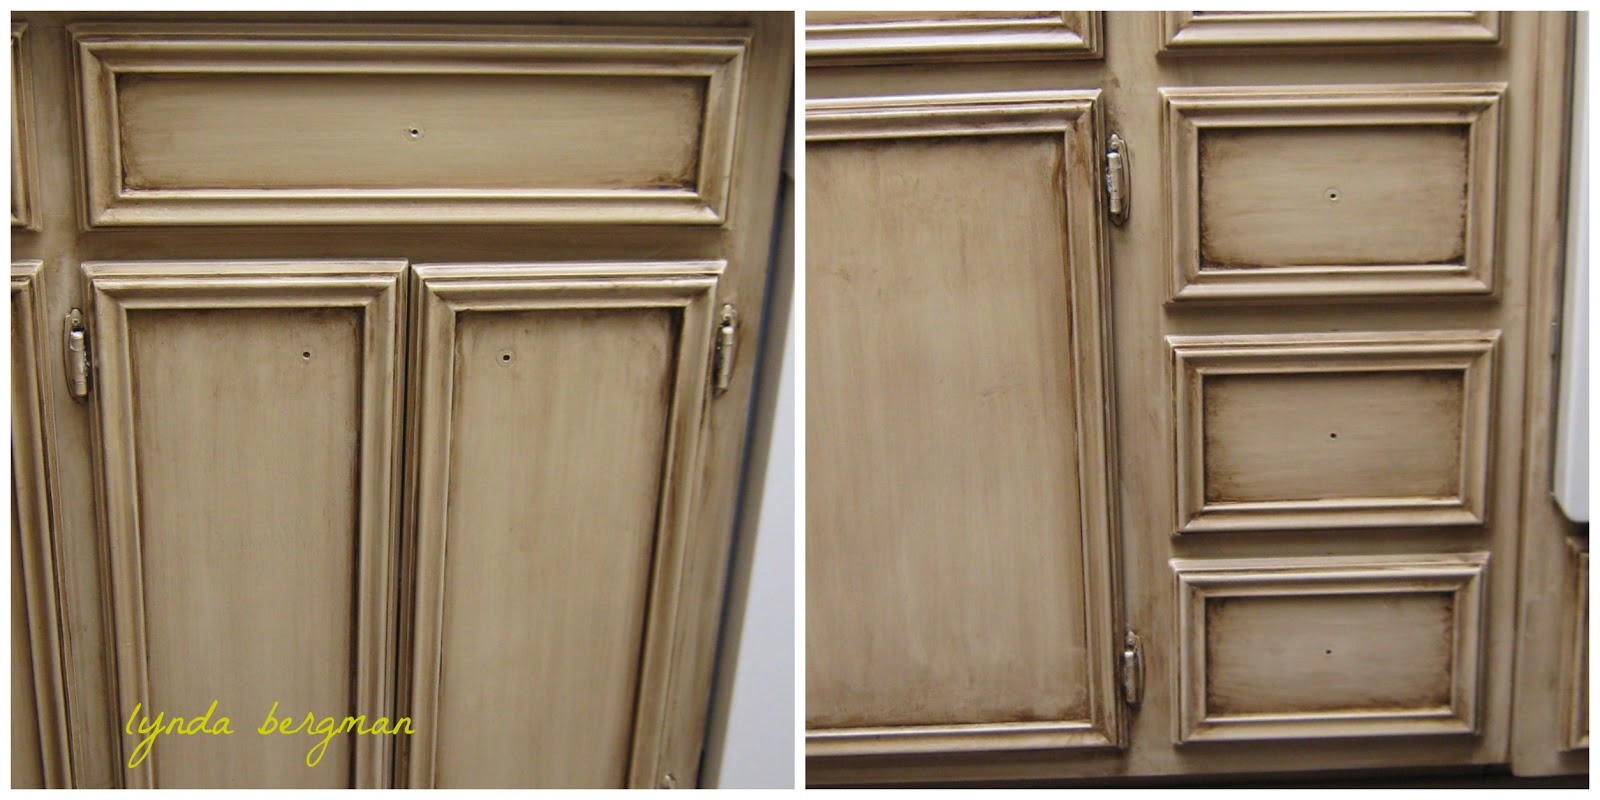 lynda bergman decorative artisan painting a special aging ForAntiquing Painted Kitchen Cabinets